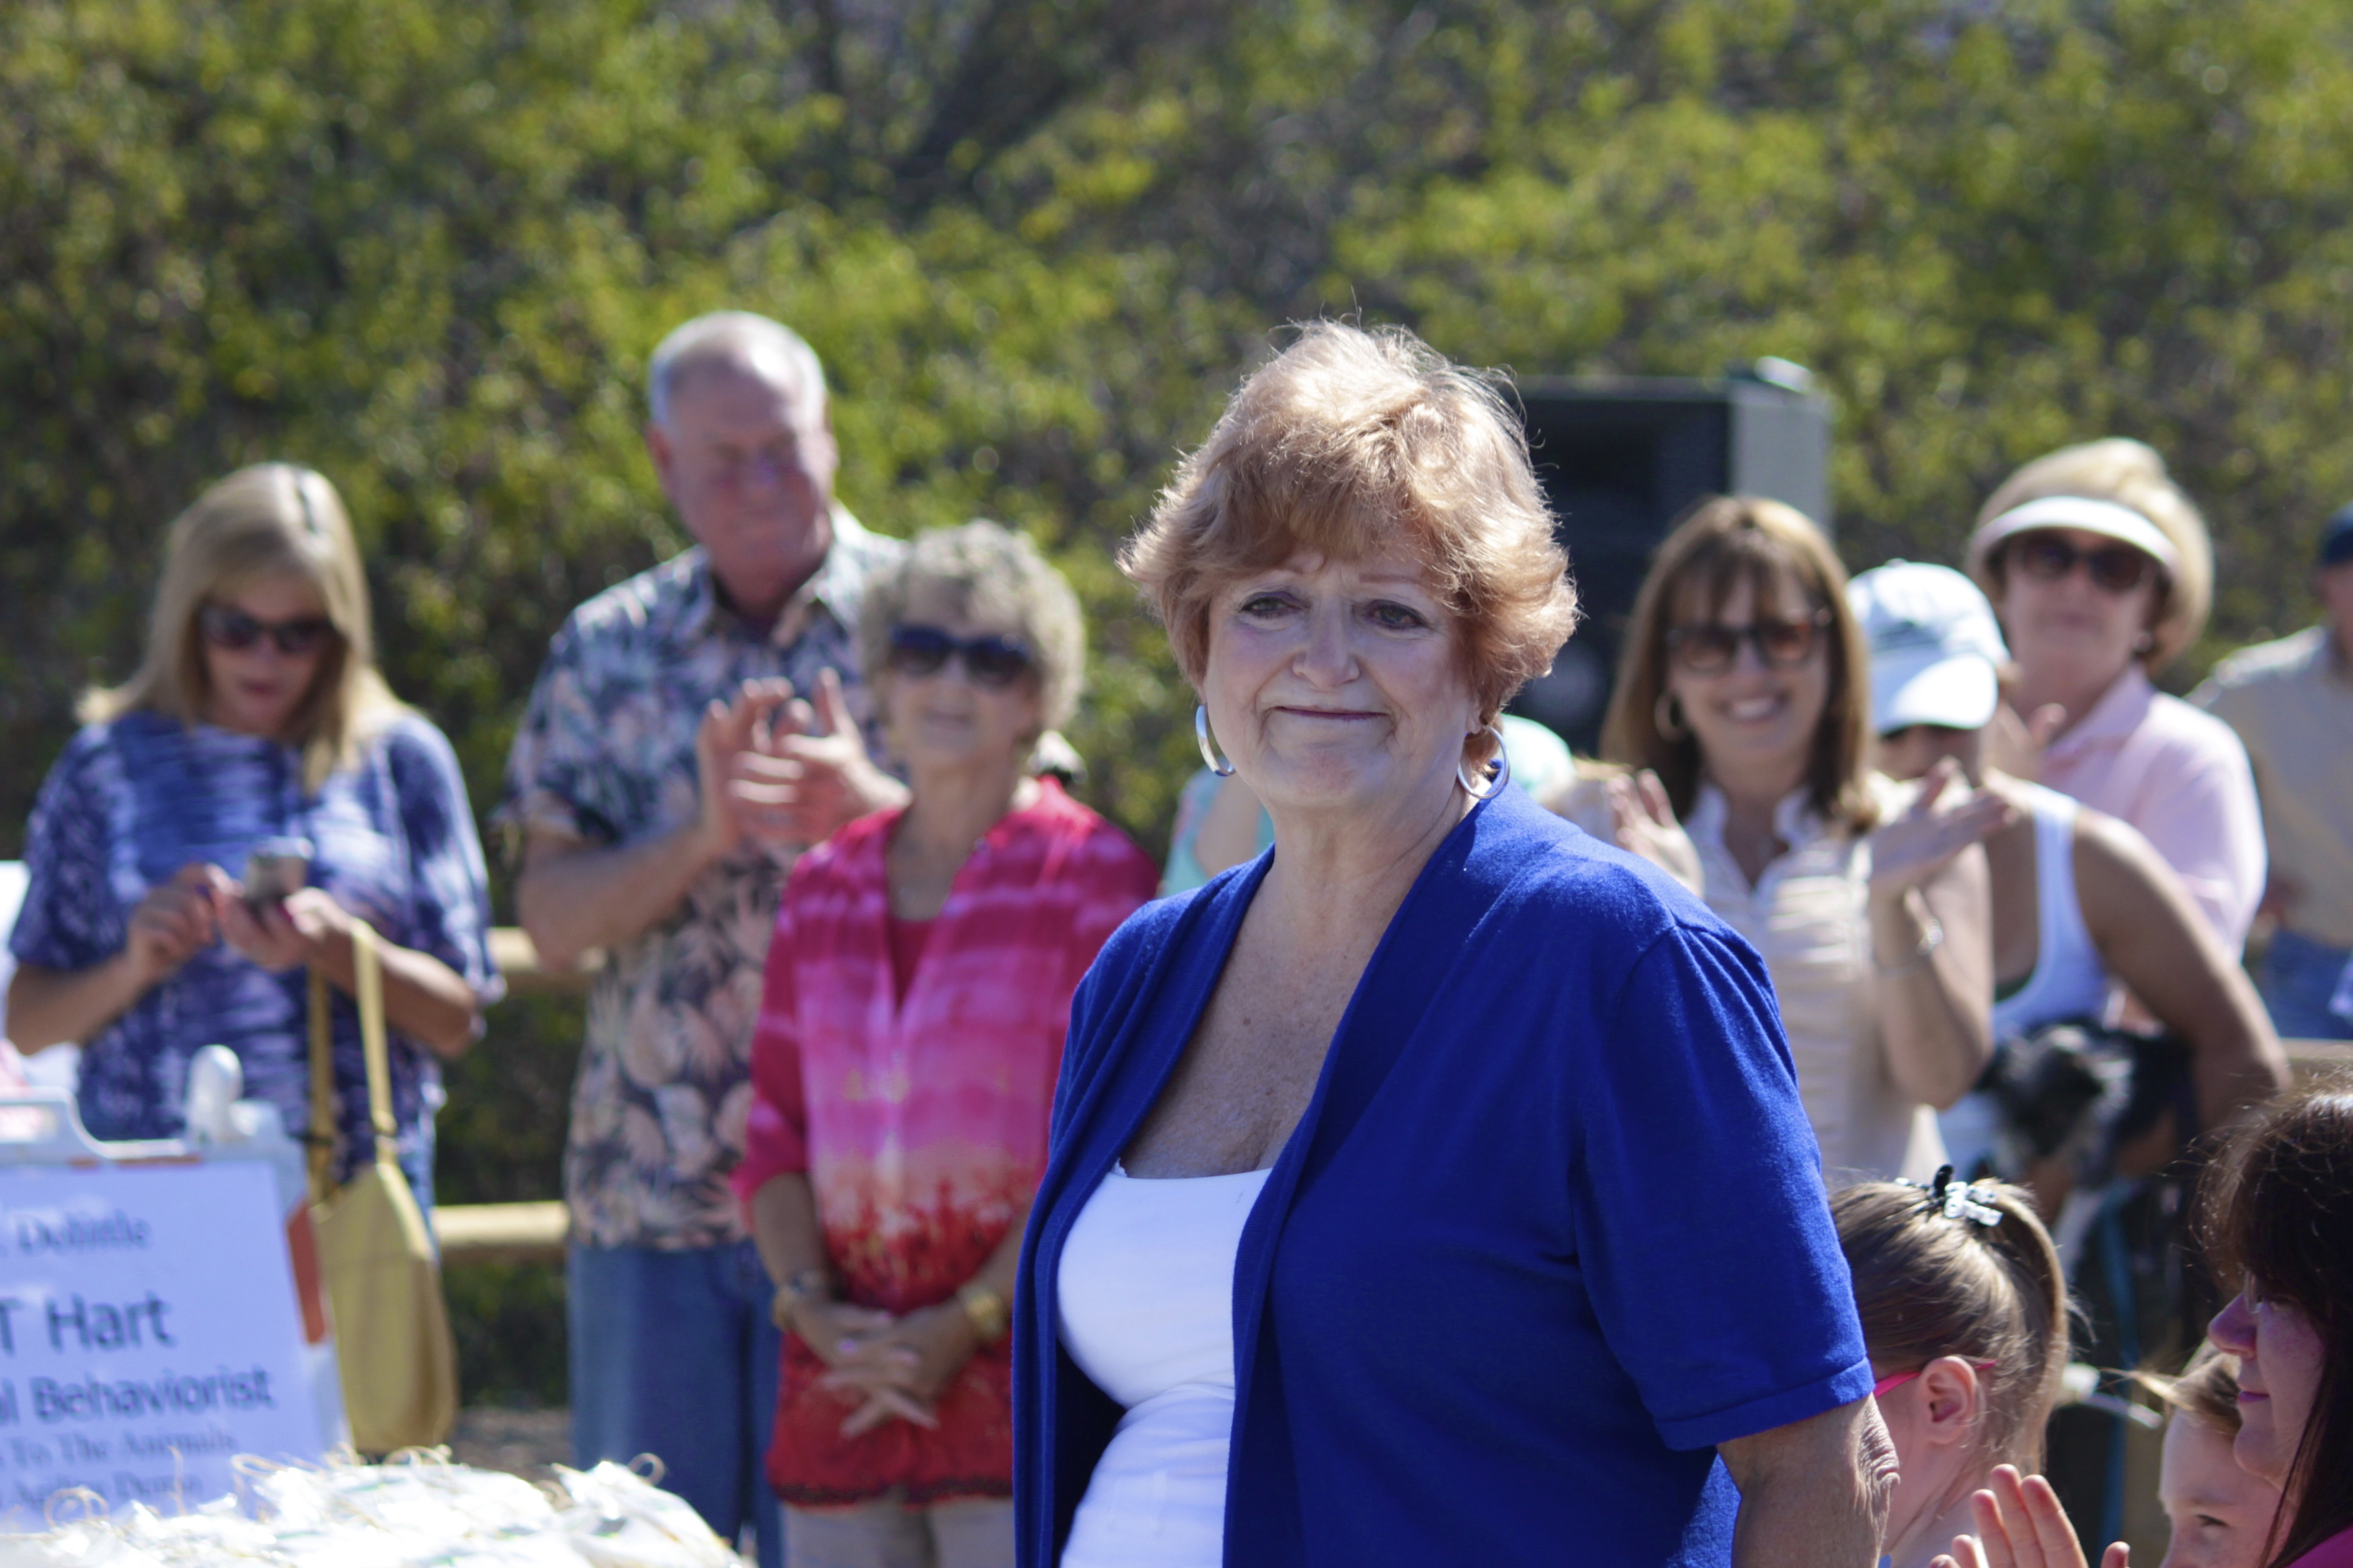 Goldee Cortese, widow of Dr. Joe Cortese, is recognized before the ribbon cutting. Photo by Brian Park